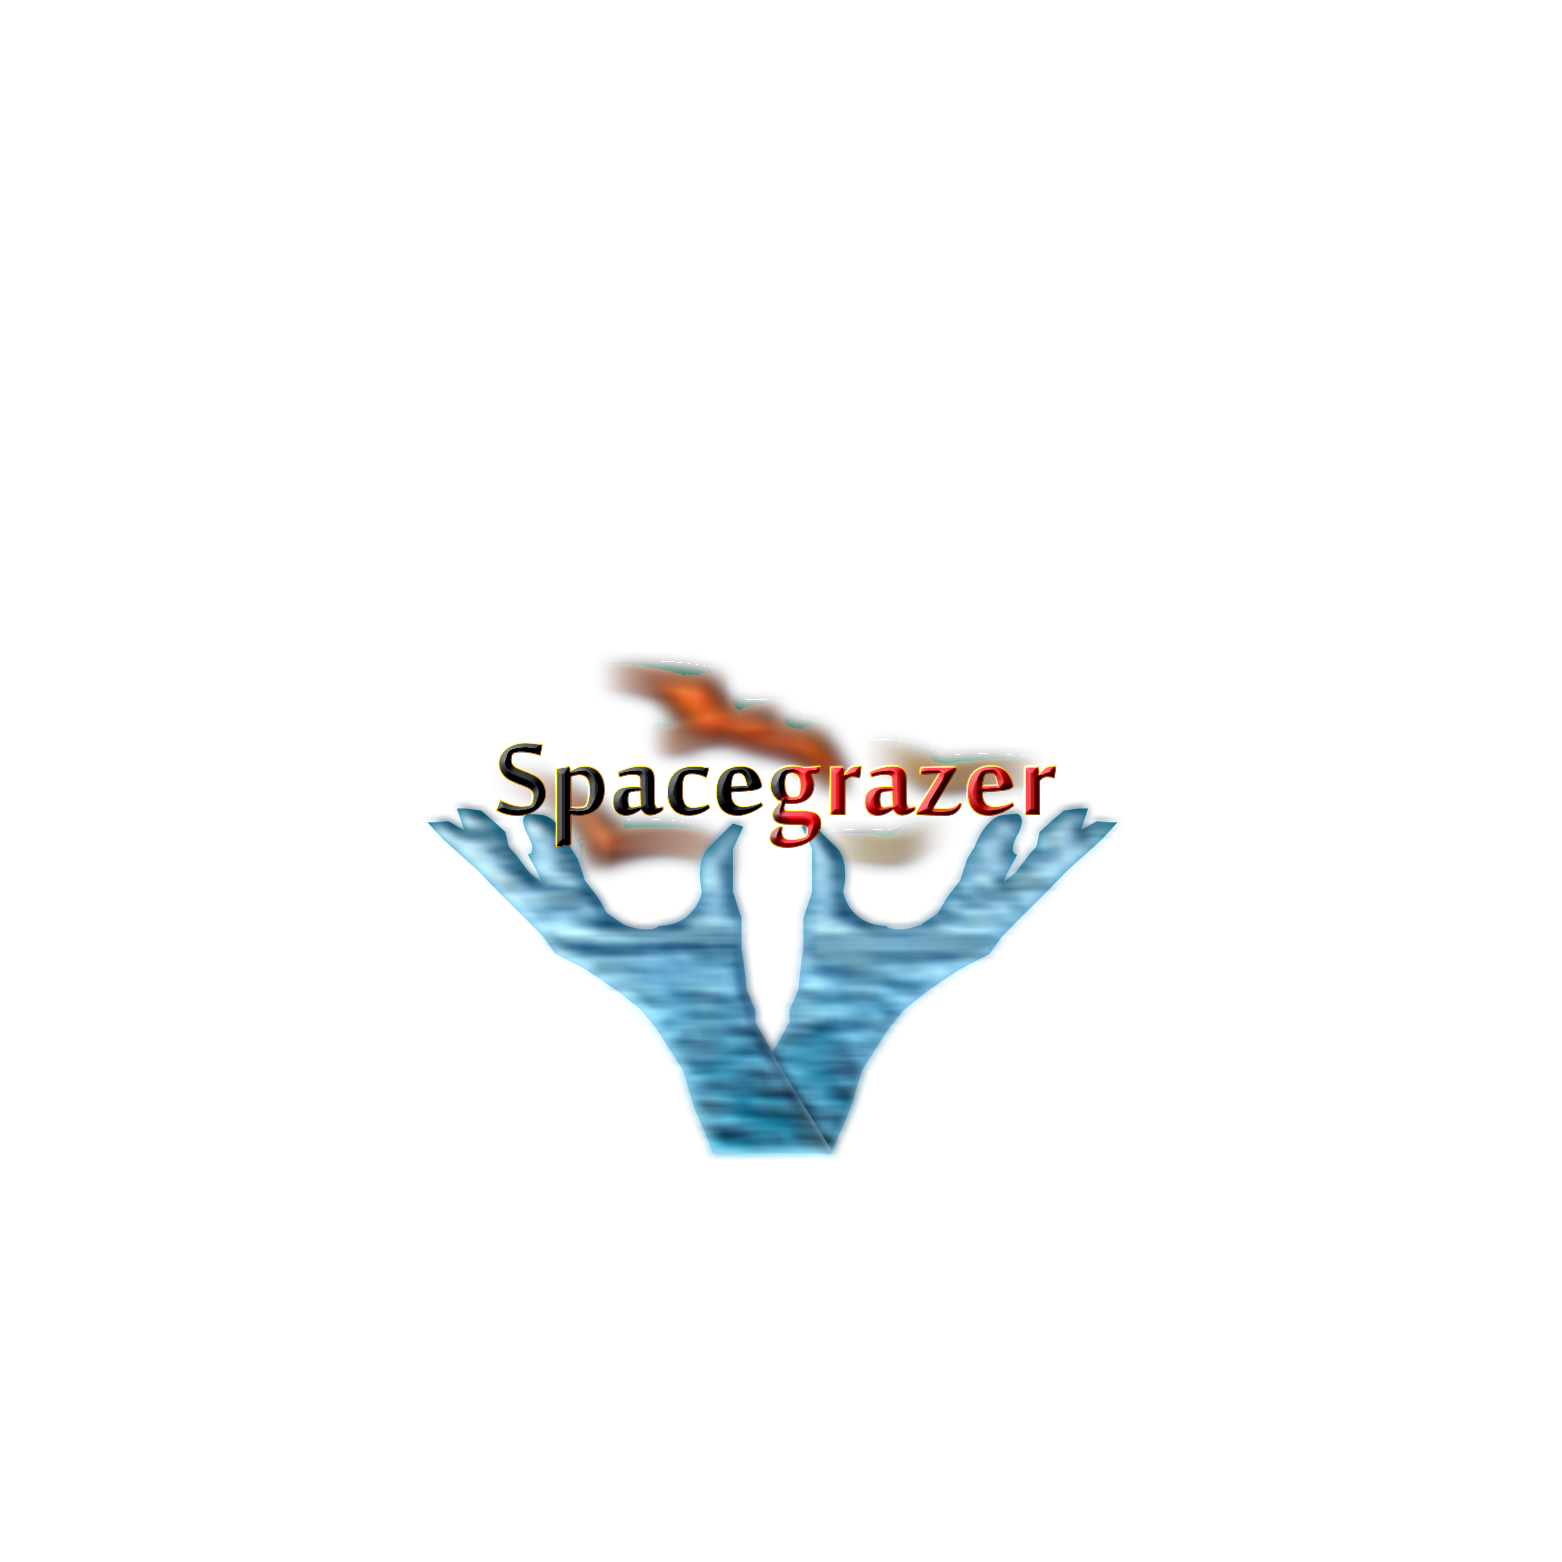 Logo Design by Steven Fitzpatrick - Entry No. 139 in the Logo Design Contest Fun Logo Design for Spacegrazer.